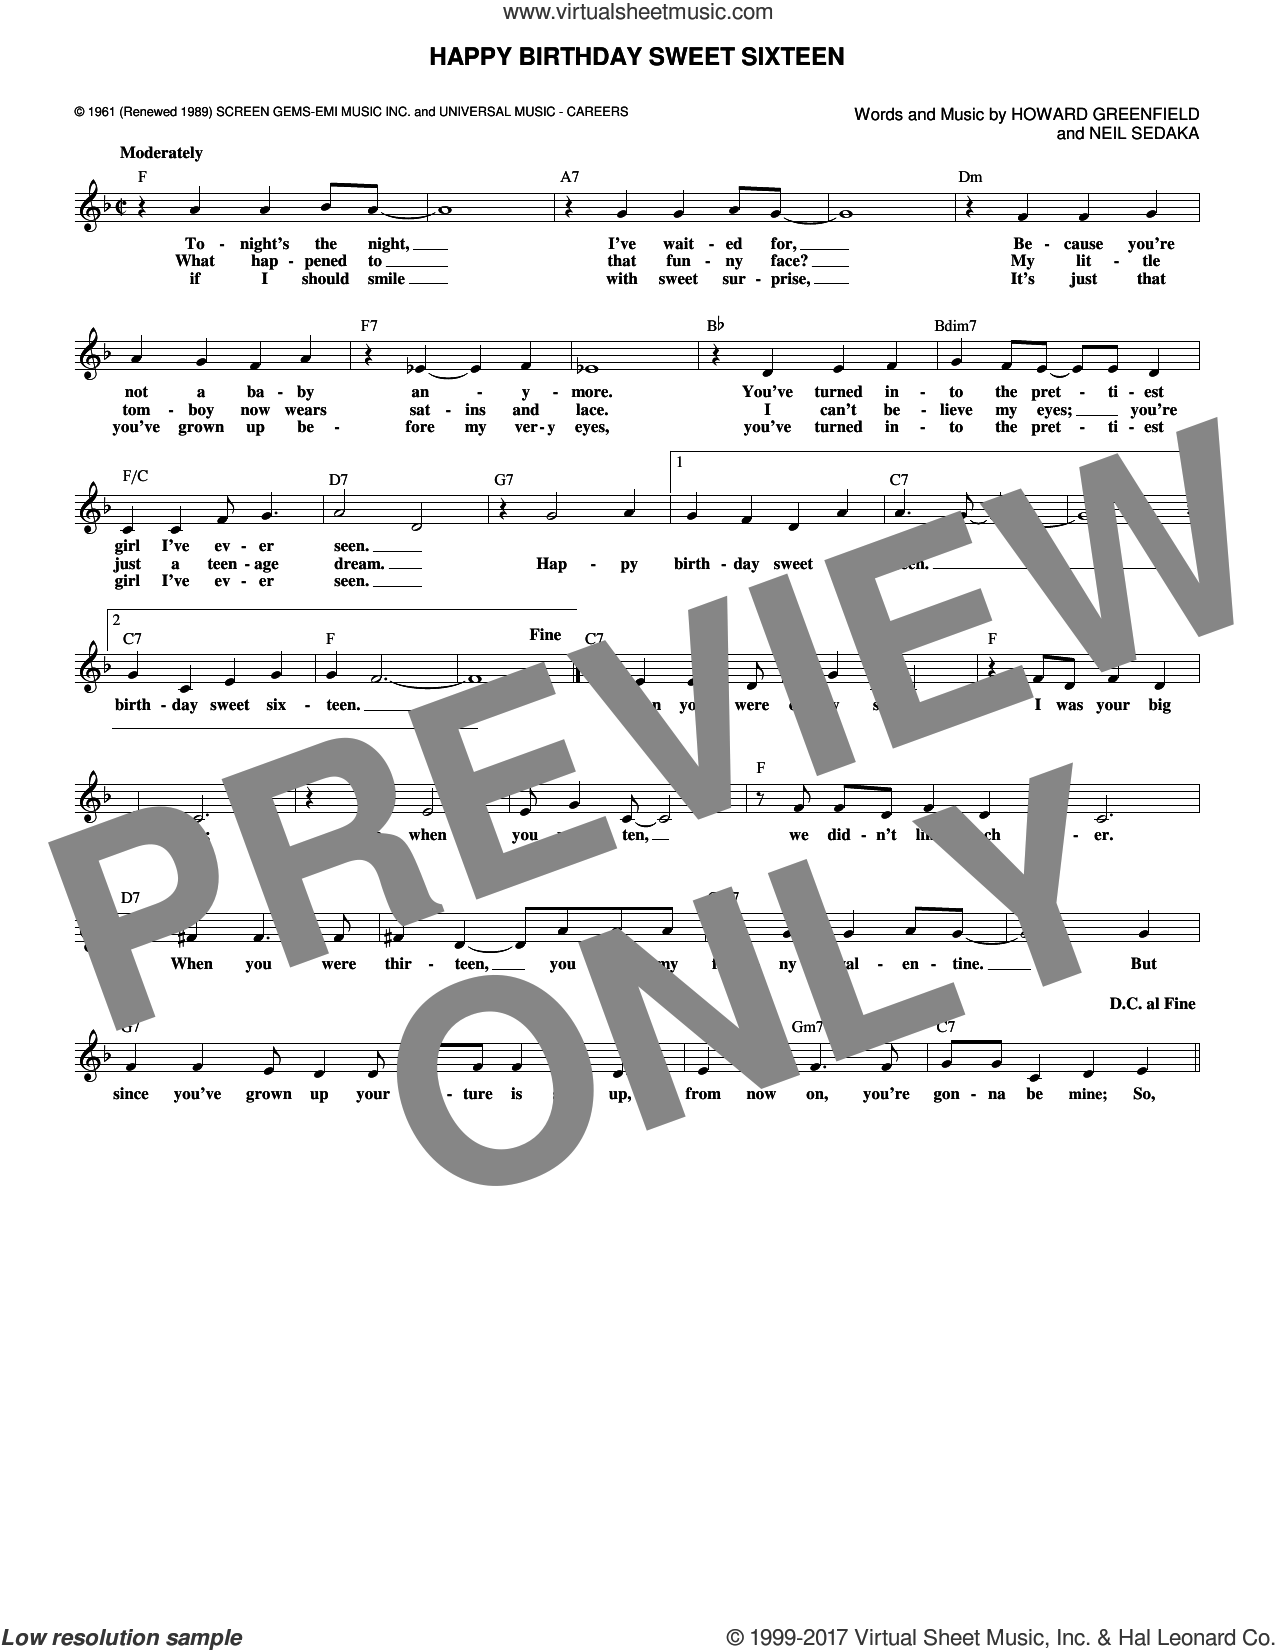 Happy Birthday Sweet Sixteen sheet music for voice and other instruments (fake book) by Howard Greenfield and Neil Sedaka. Score Image Preview.